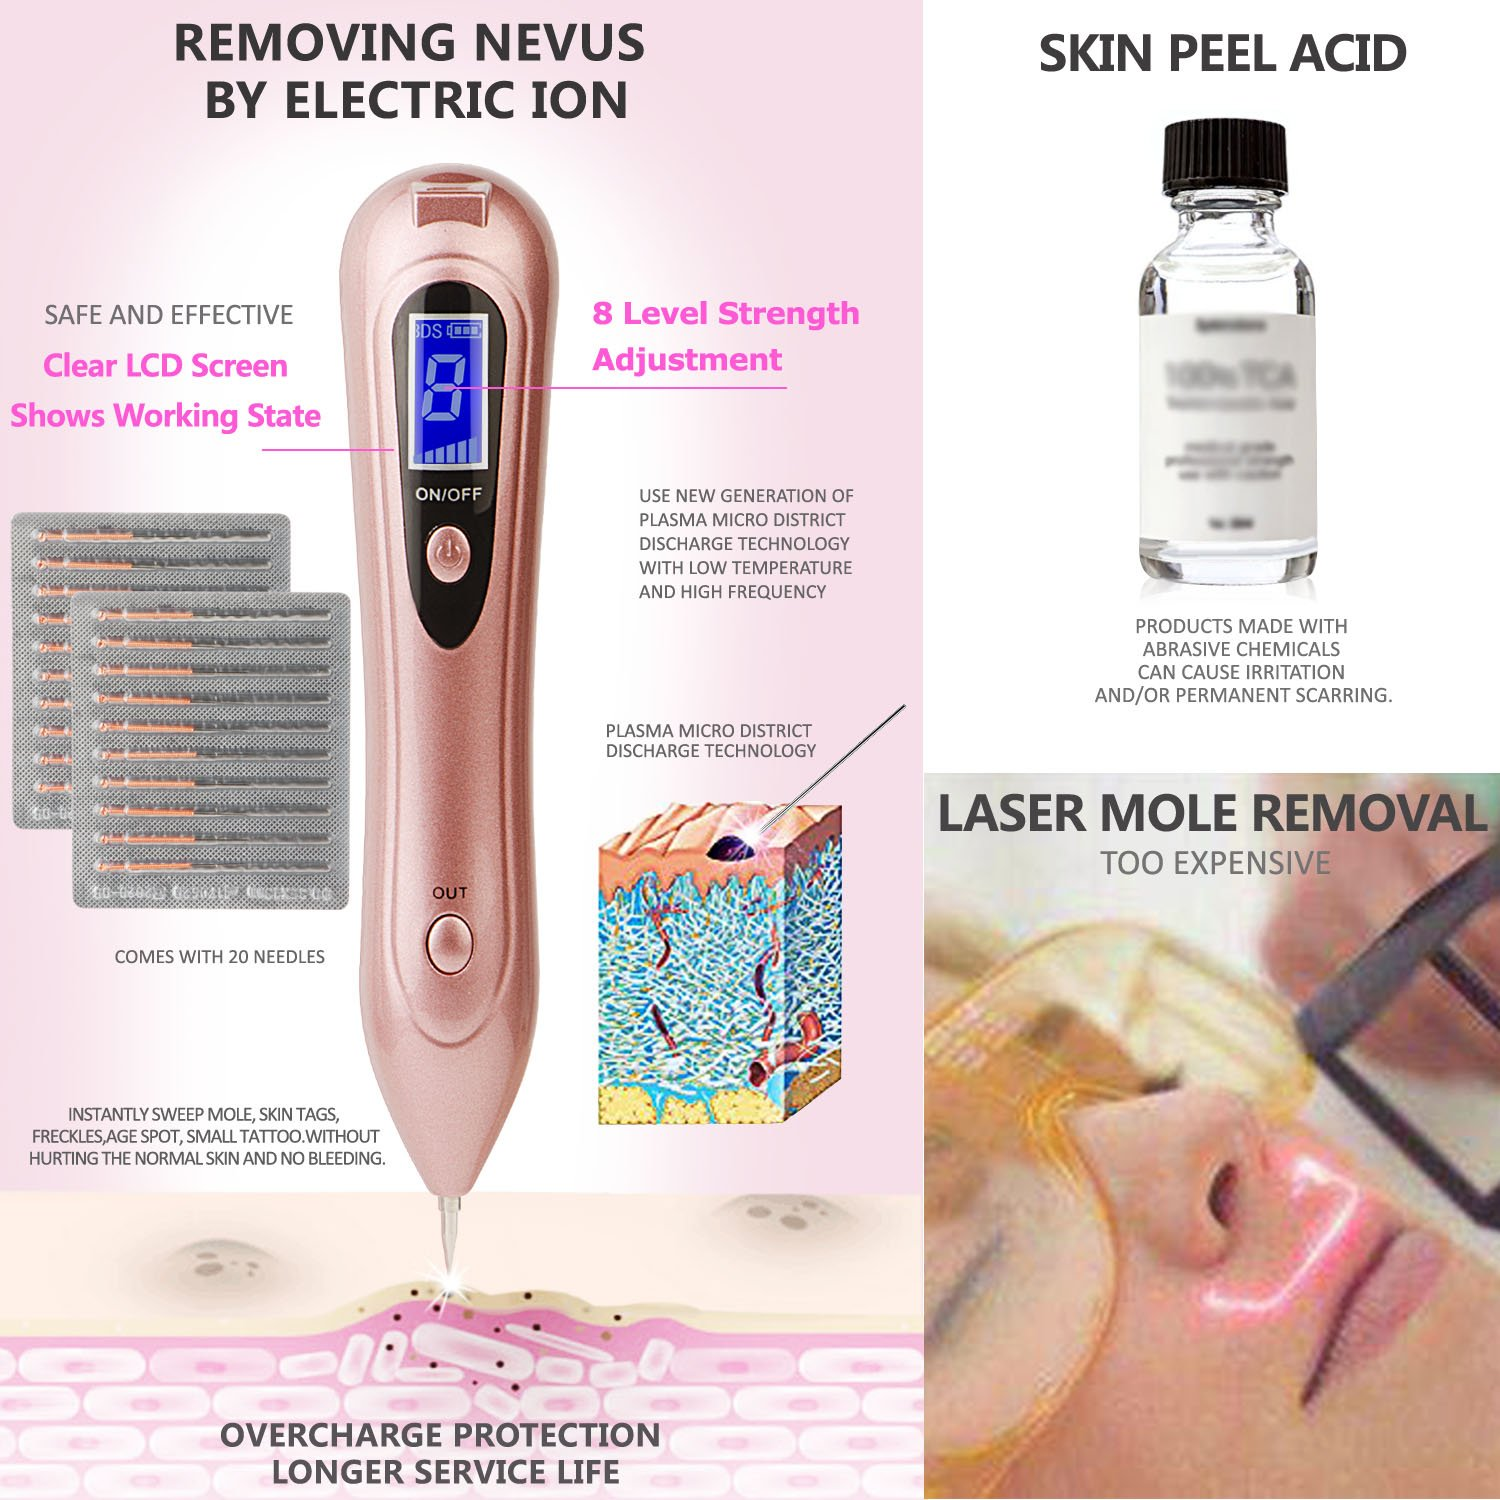 Spot Eraser Pro for Freckles, Warts, Age Spots, Tattoo, Nevus, Birthmark, Skin Pigmentation - No Bleeding & Rapid Healing, Portable Safety USB Rechargeable by Positivelife (Image #7)